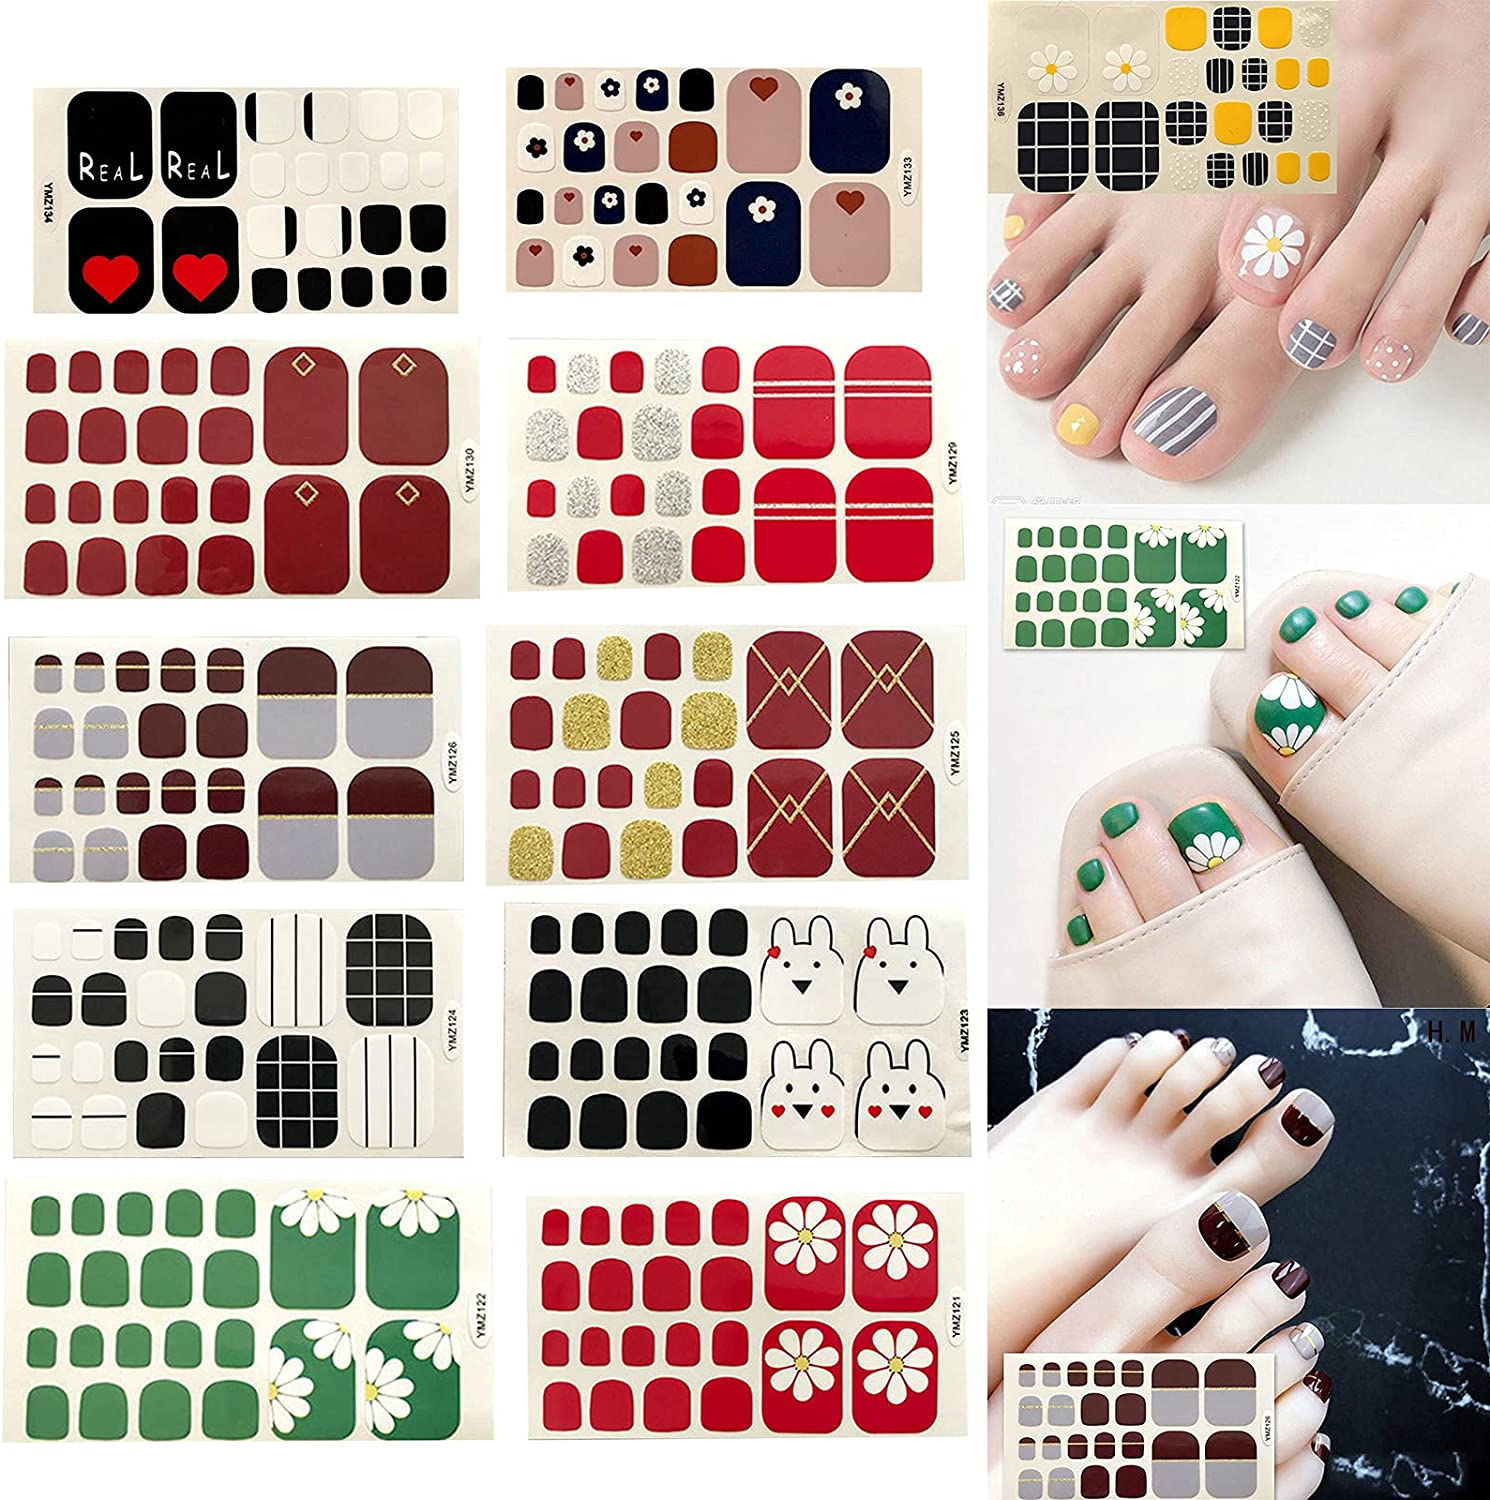 JHKUNO Toe Nail 70% OFF Outlet shop Stickers for Waterproof Chic Art Color